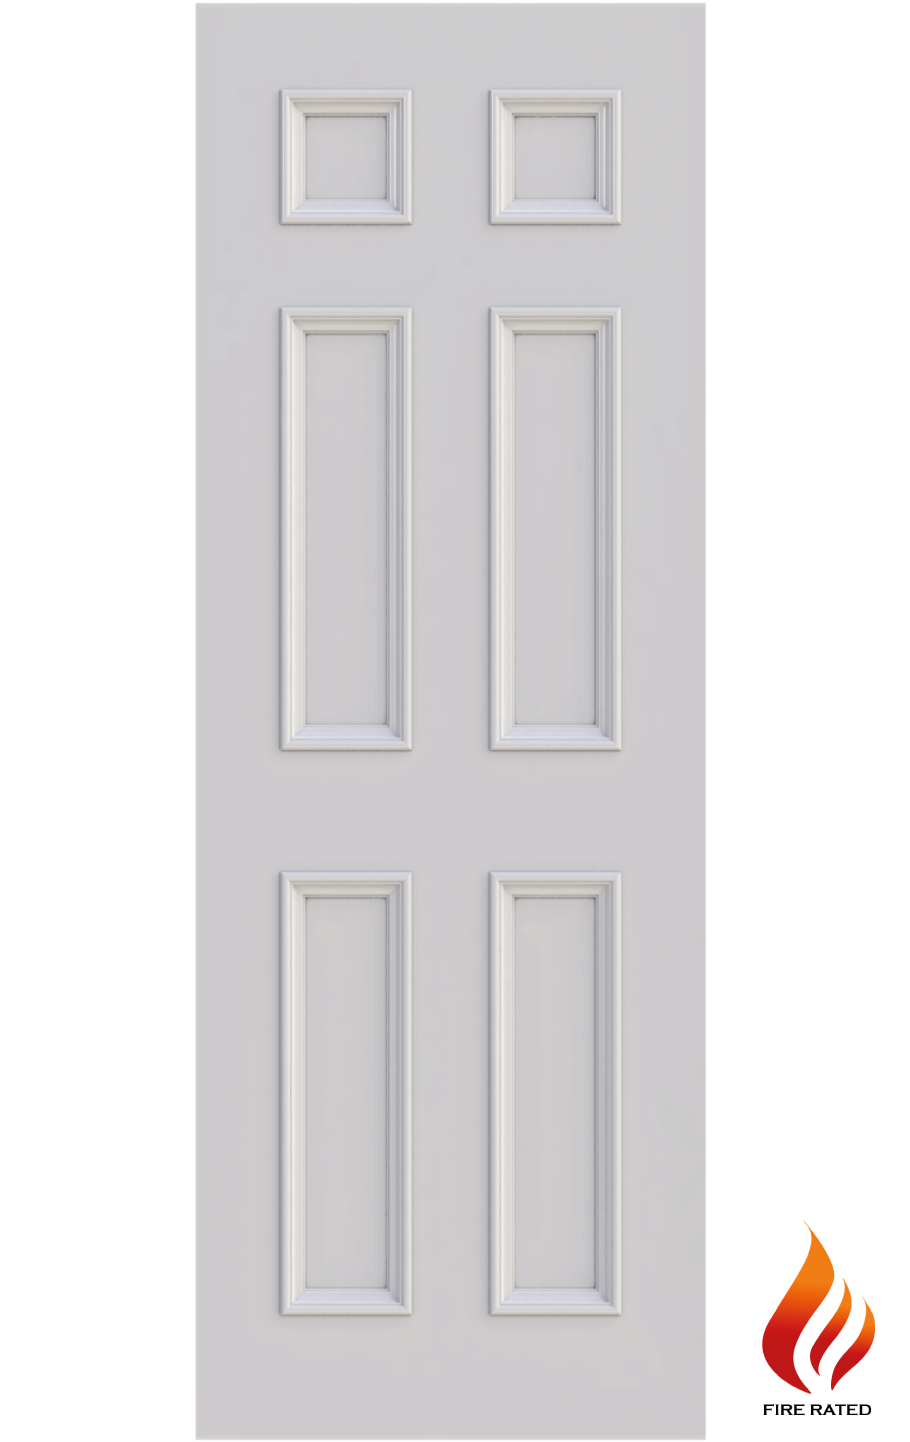 6 panel fire doors  sc 1 st  Trunk Doors & Made to Measure Fire Doors | FD30 Bespoke Custom Doors UK u0026 Ireland